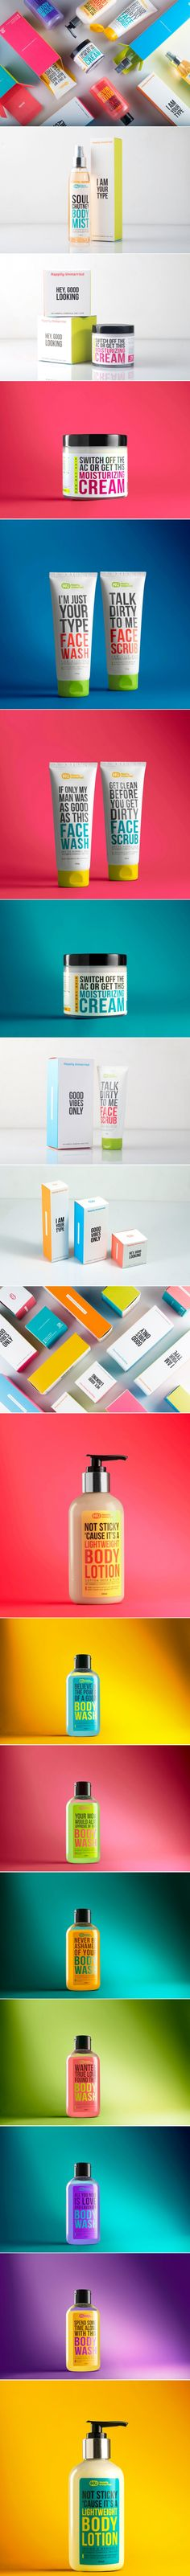 Happily Unmarried is a Personal Care Line With a Purpose — The Dieline | Packaging & Branding Design & Innovation News